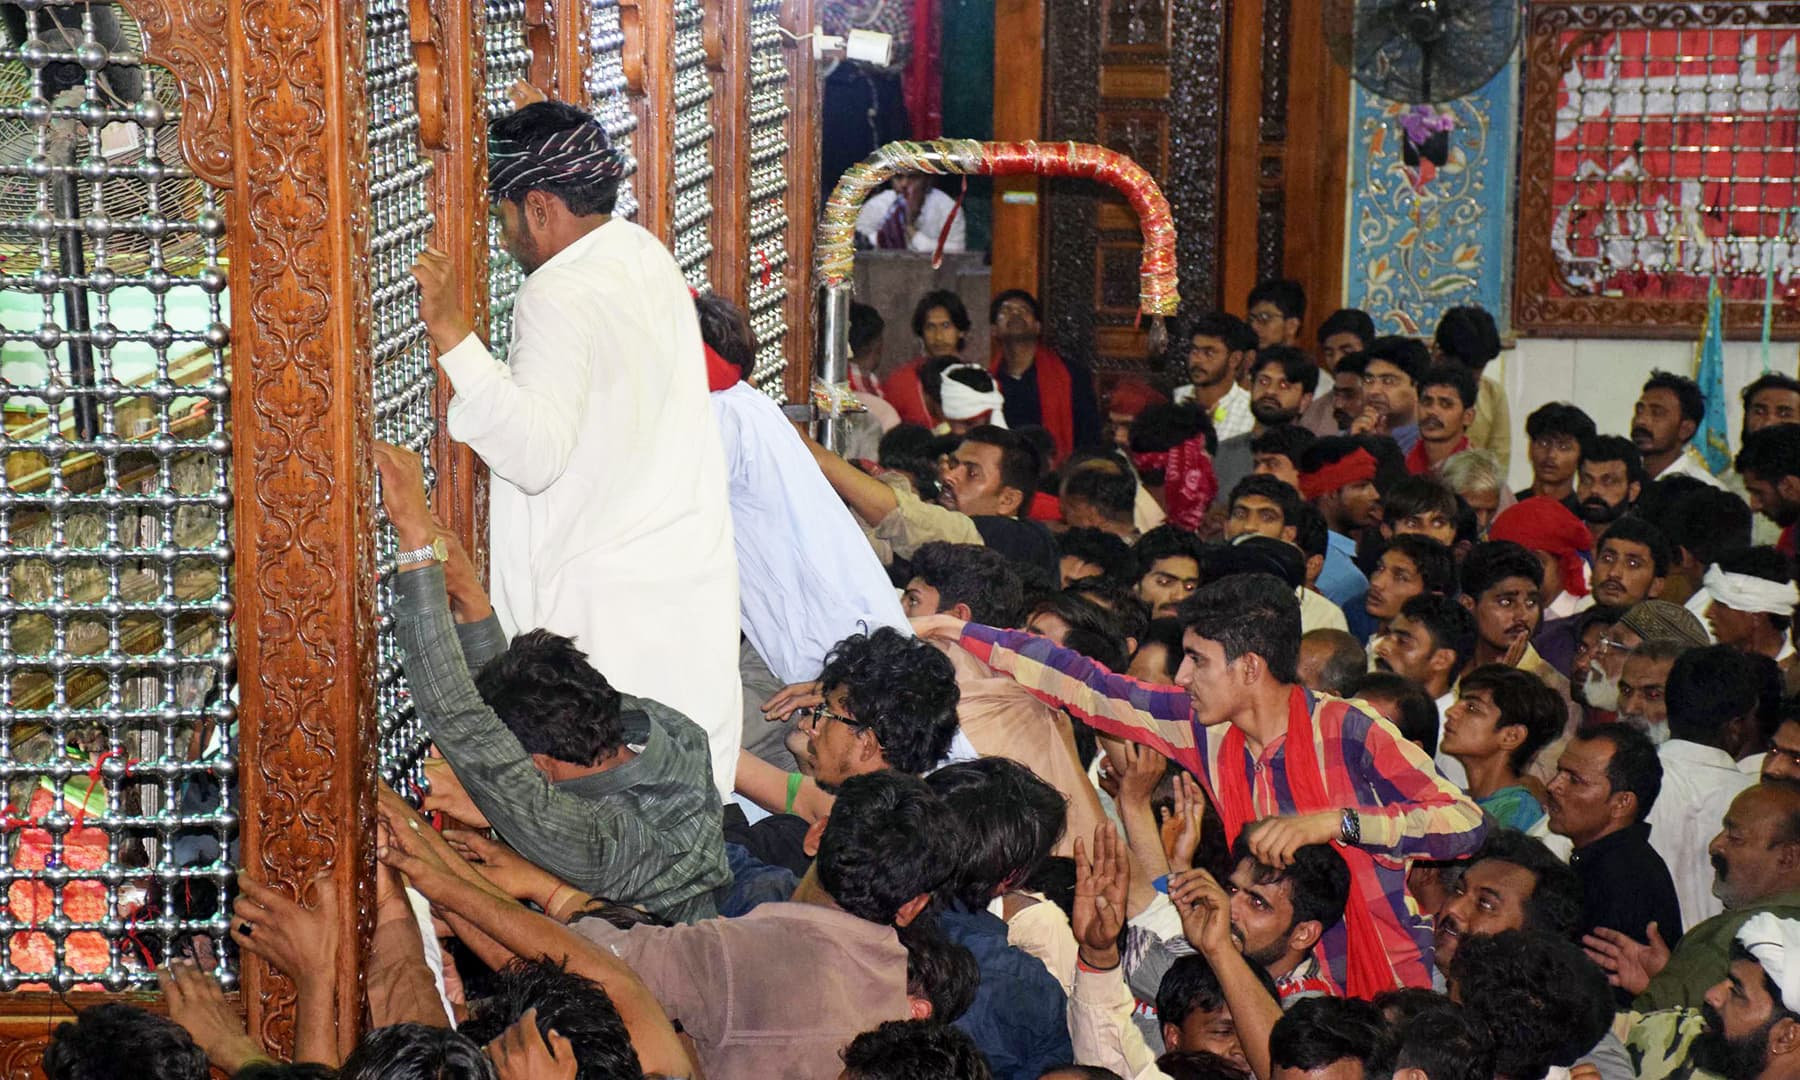 Devotees struggle to touch the brown wooden frame built around the grave of Qalandar and called *zari* in the spiritual order.